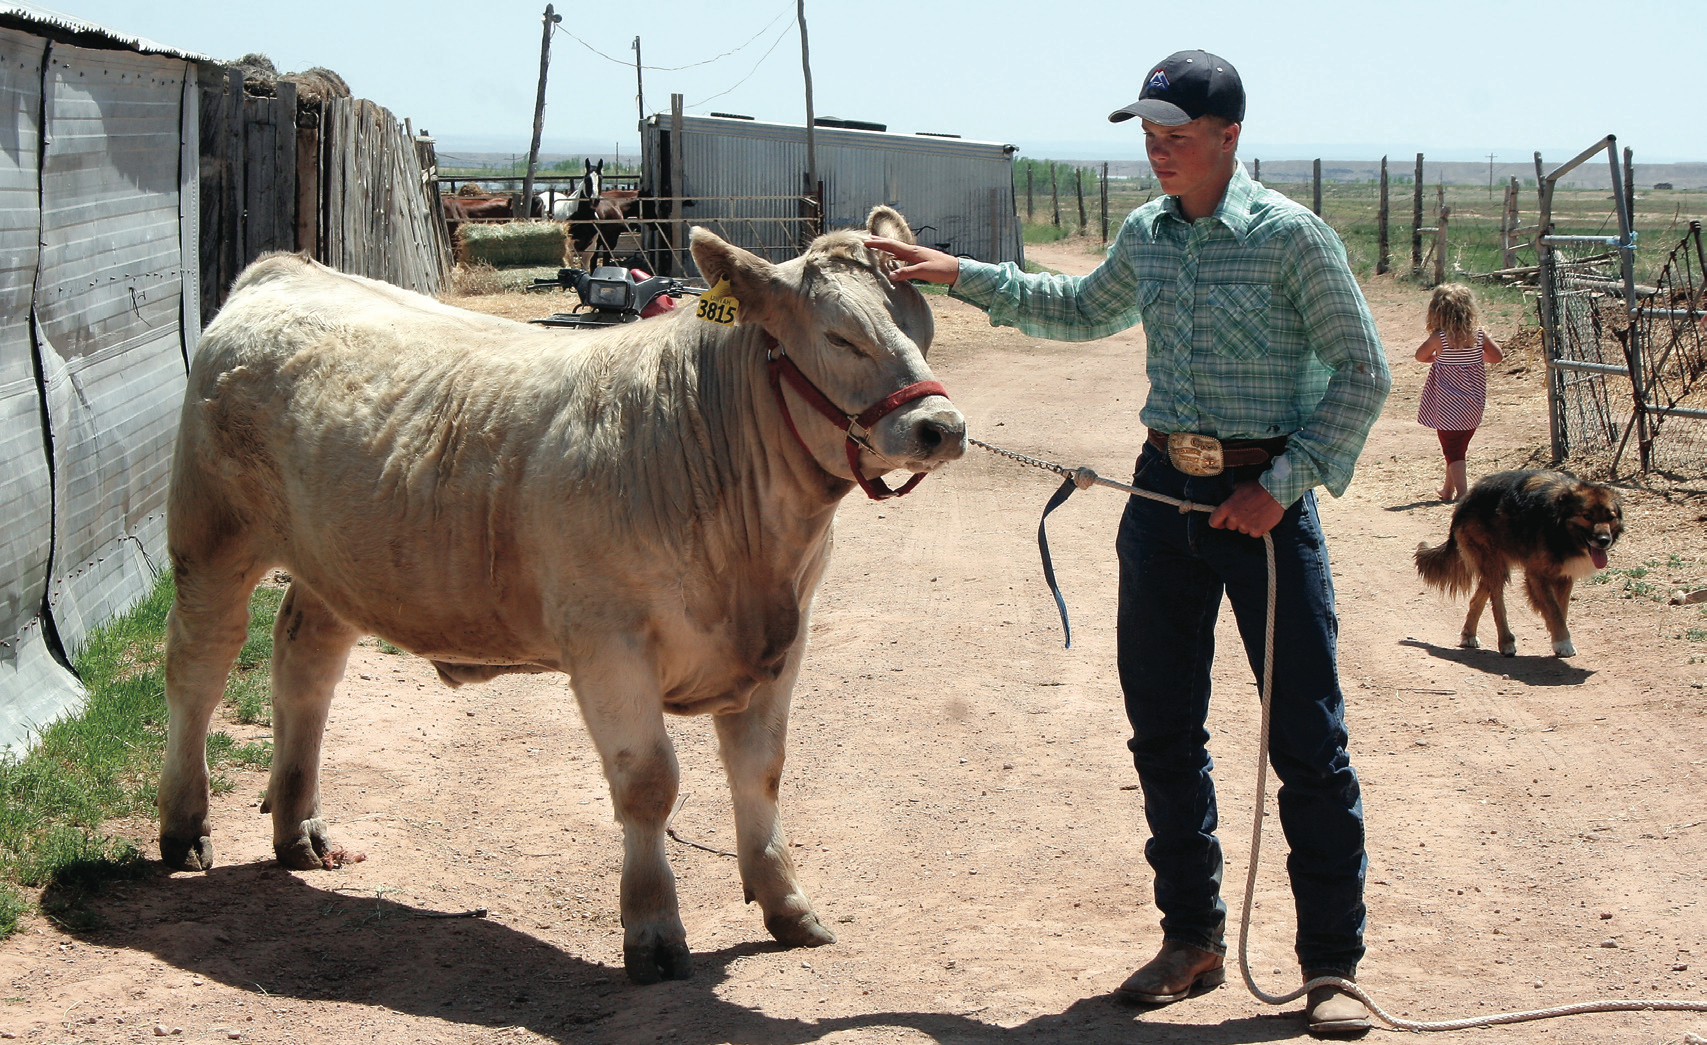 For Joe Frost working with a steer is almost second nature. While talking with the Vernal Express and his family, he gently reaches up to show how he's worked to groom his steer.